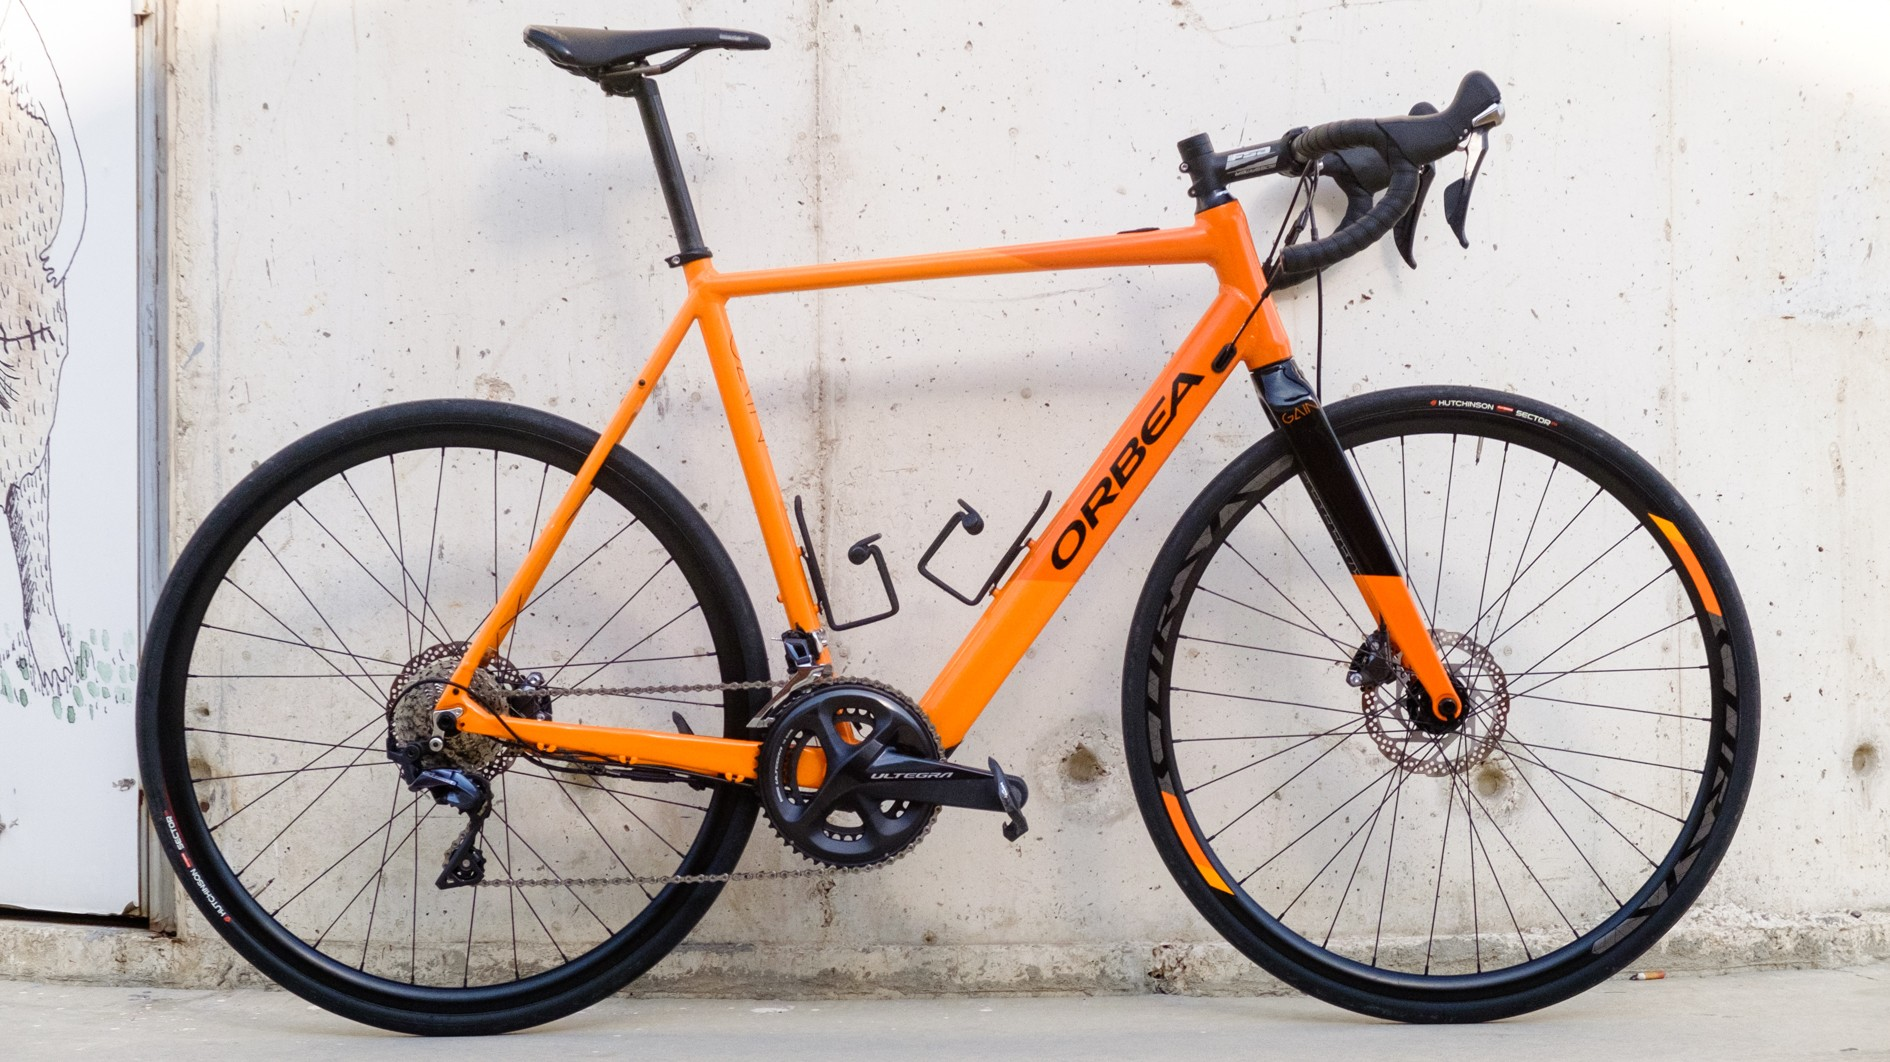 The Orbea Gain joins a rank of recently announced and neatly executed e-road bikes